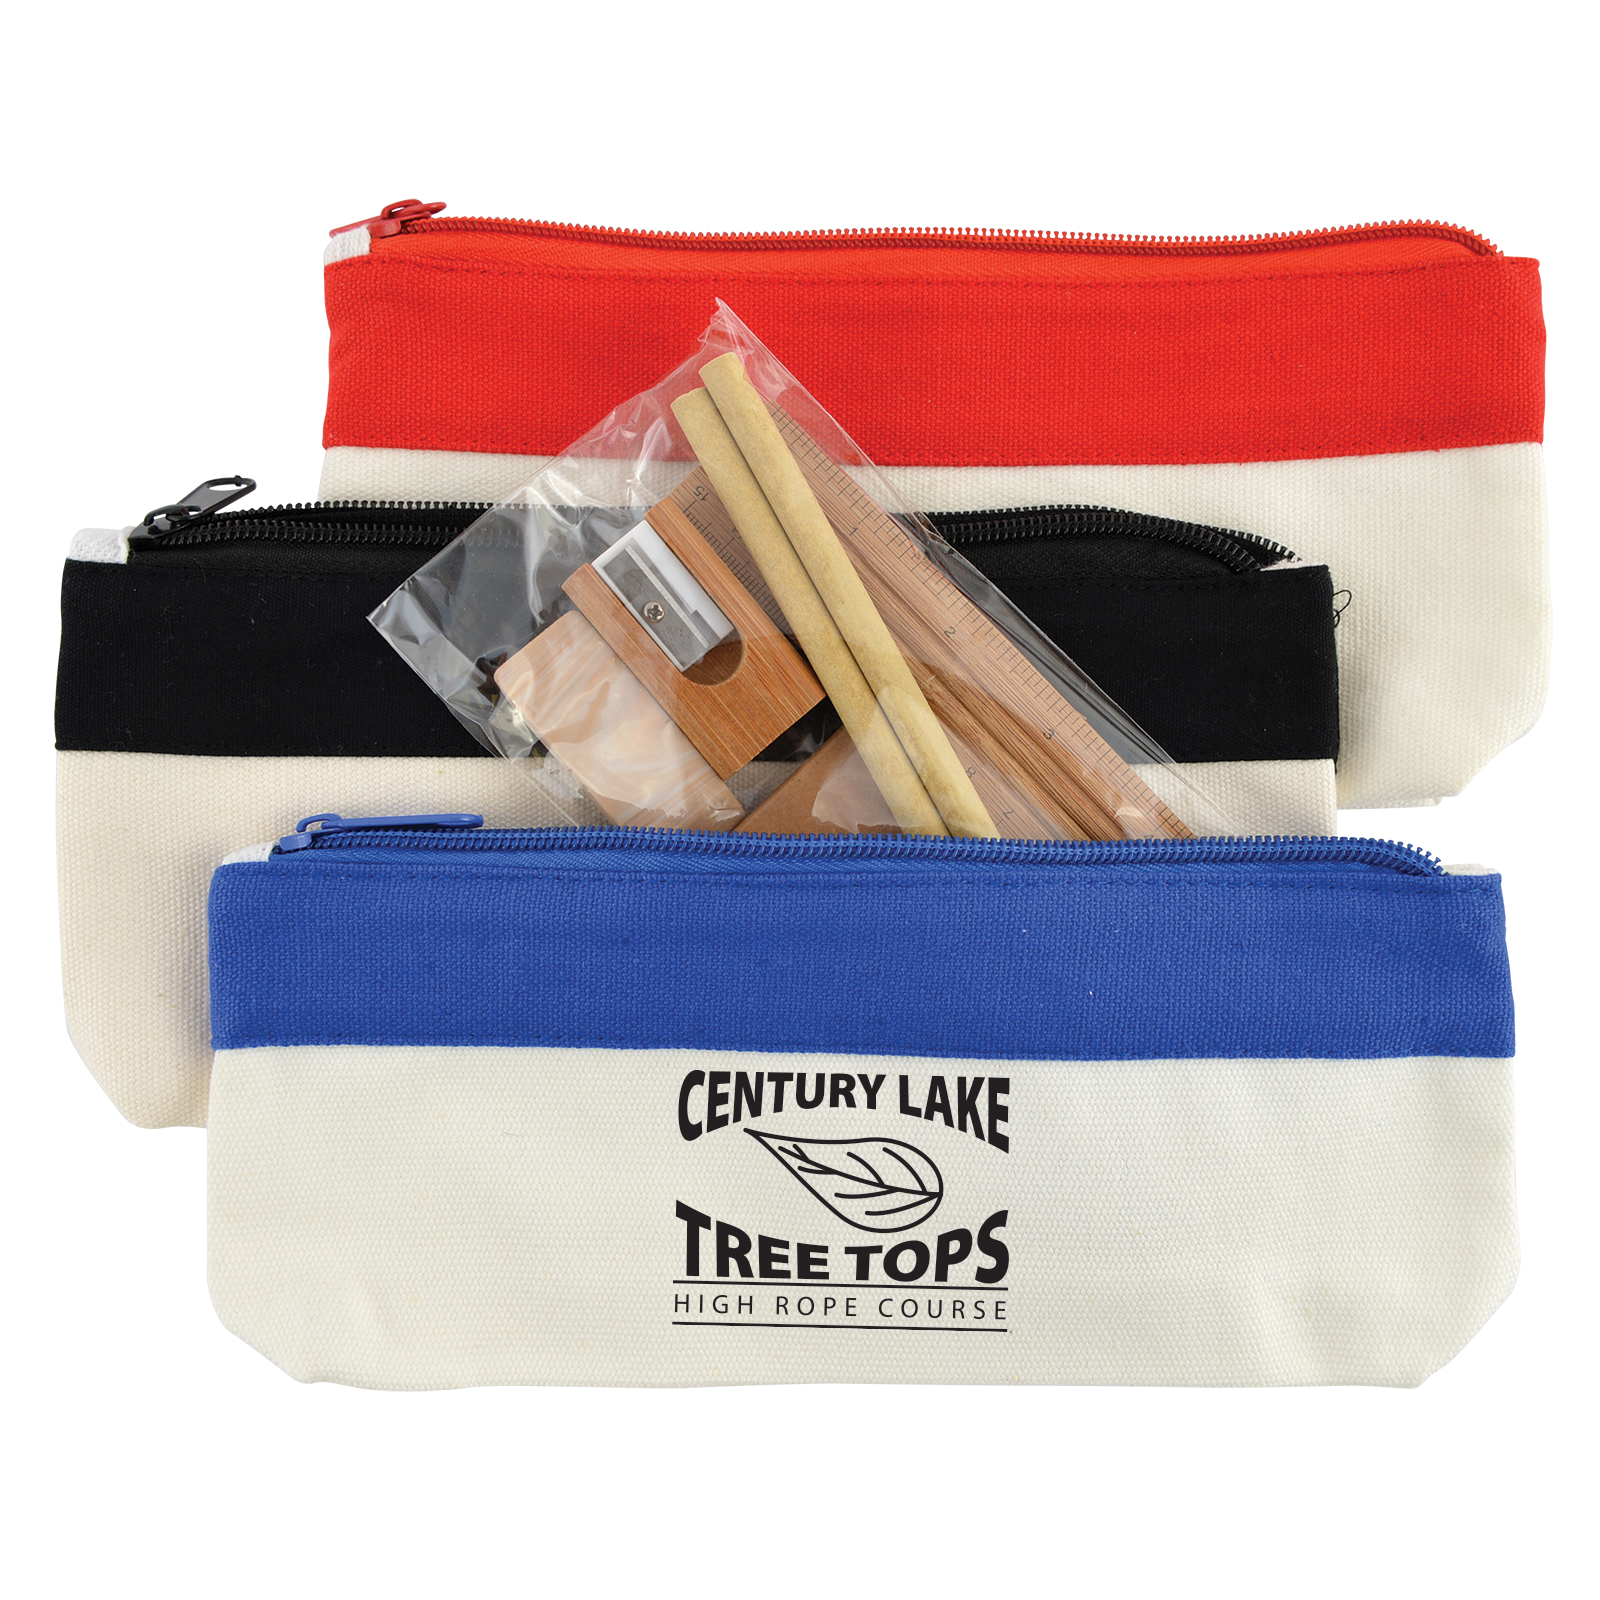 Bamboo Stationery Set in Cotton / Canvas Organiser / Pencil Case - Includes a 1 colour printed logo